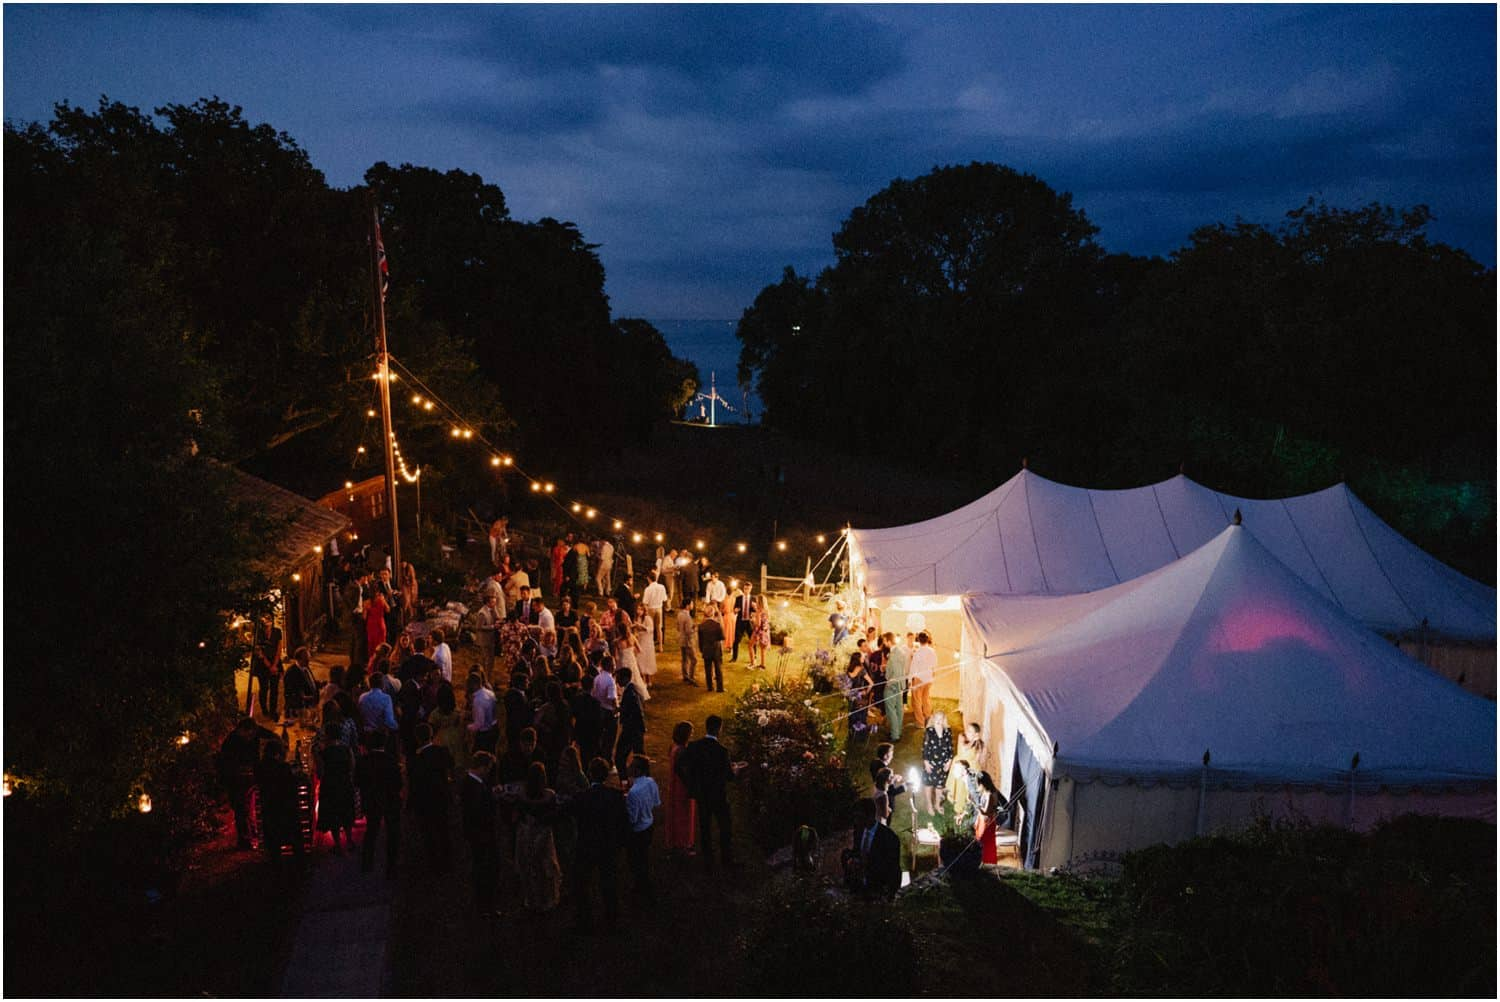 A night time view of a beautiful Isle of Wight wedding, with a marquee and lanterns in the foreground, and the ocean in the background